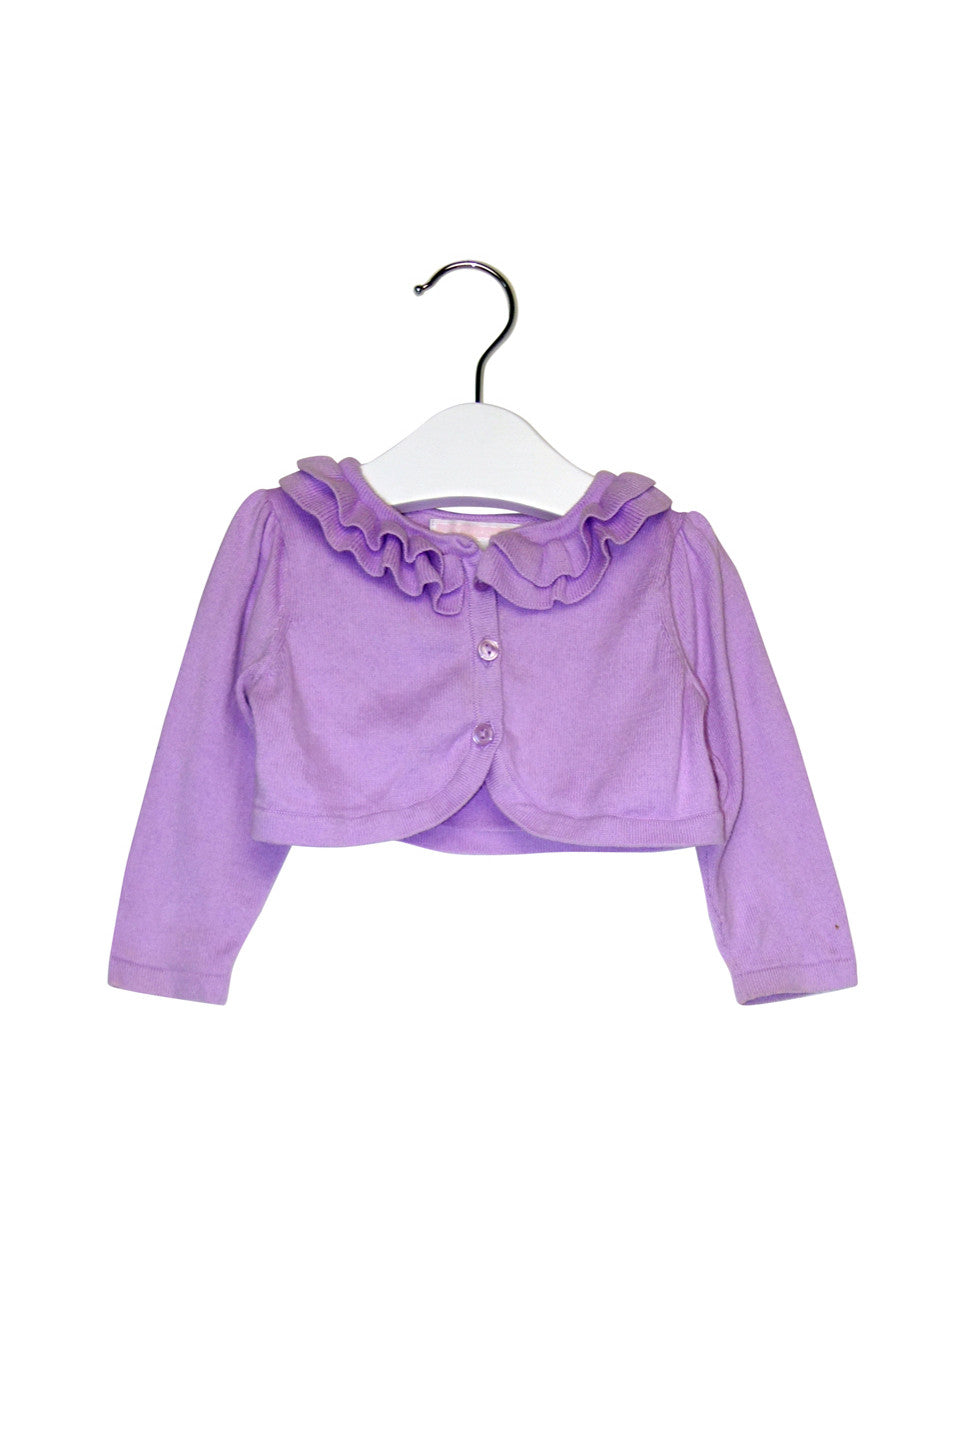 Cardigan 6-12M, Janie & Jack at Retykle - Online Baby & Kids Clothing Up to 90% Off